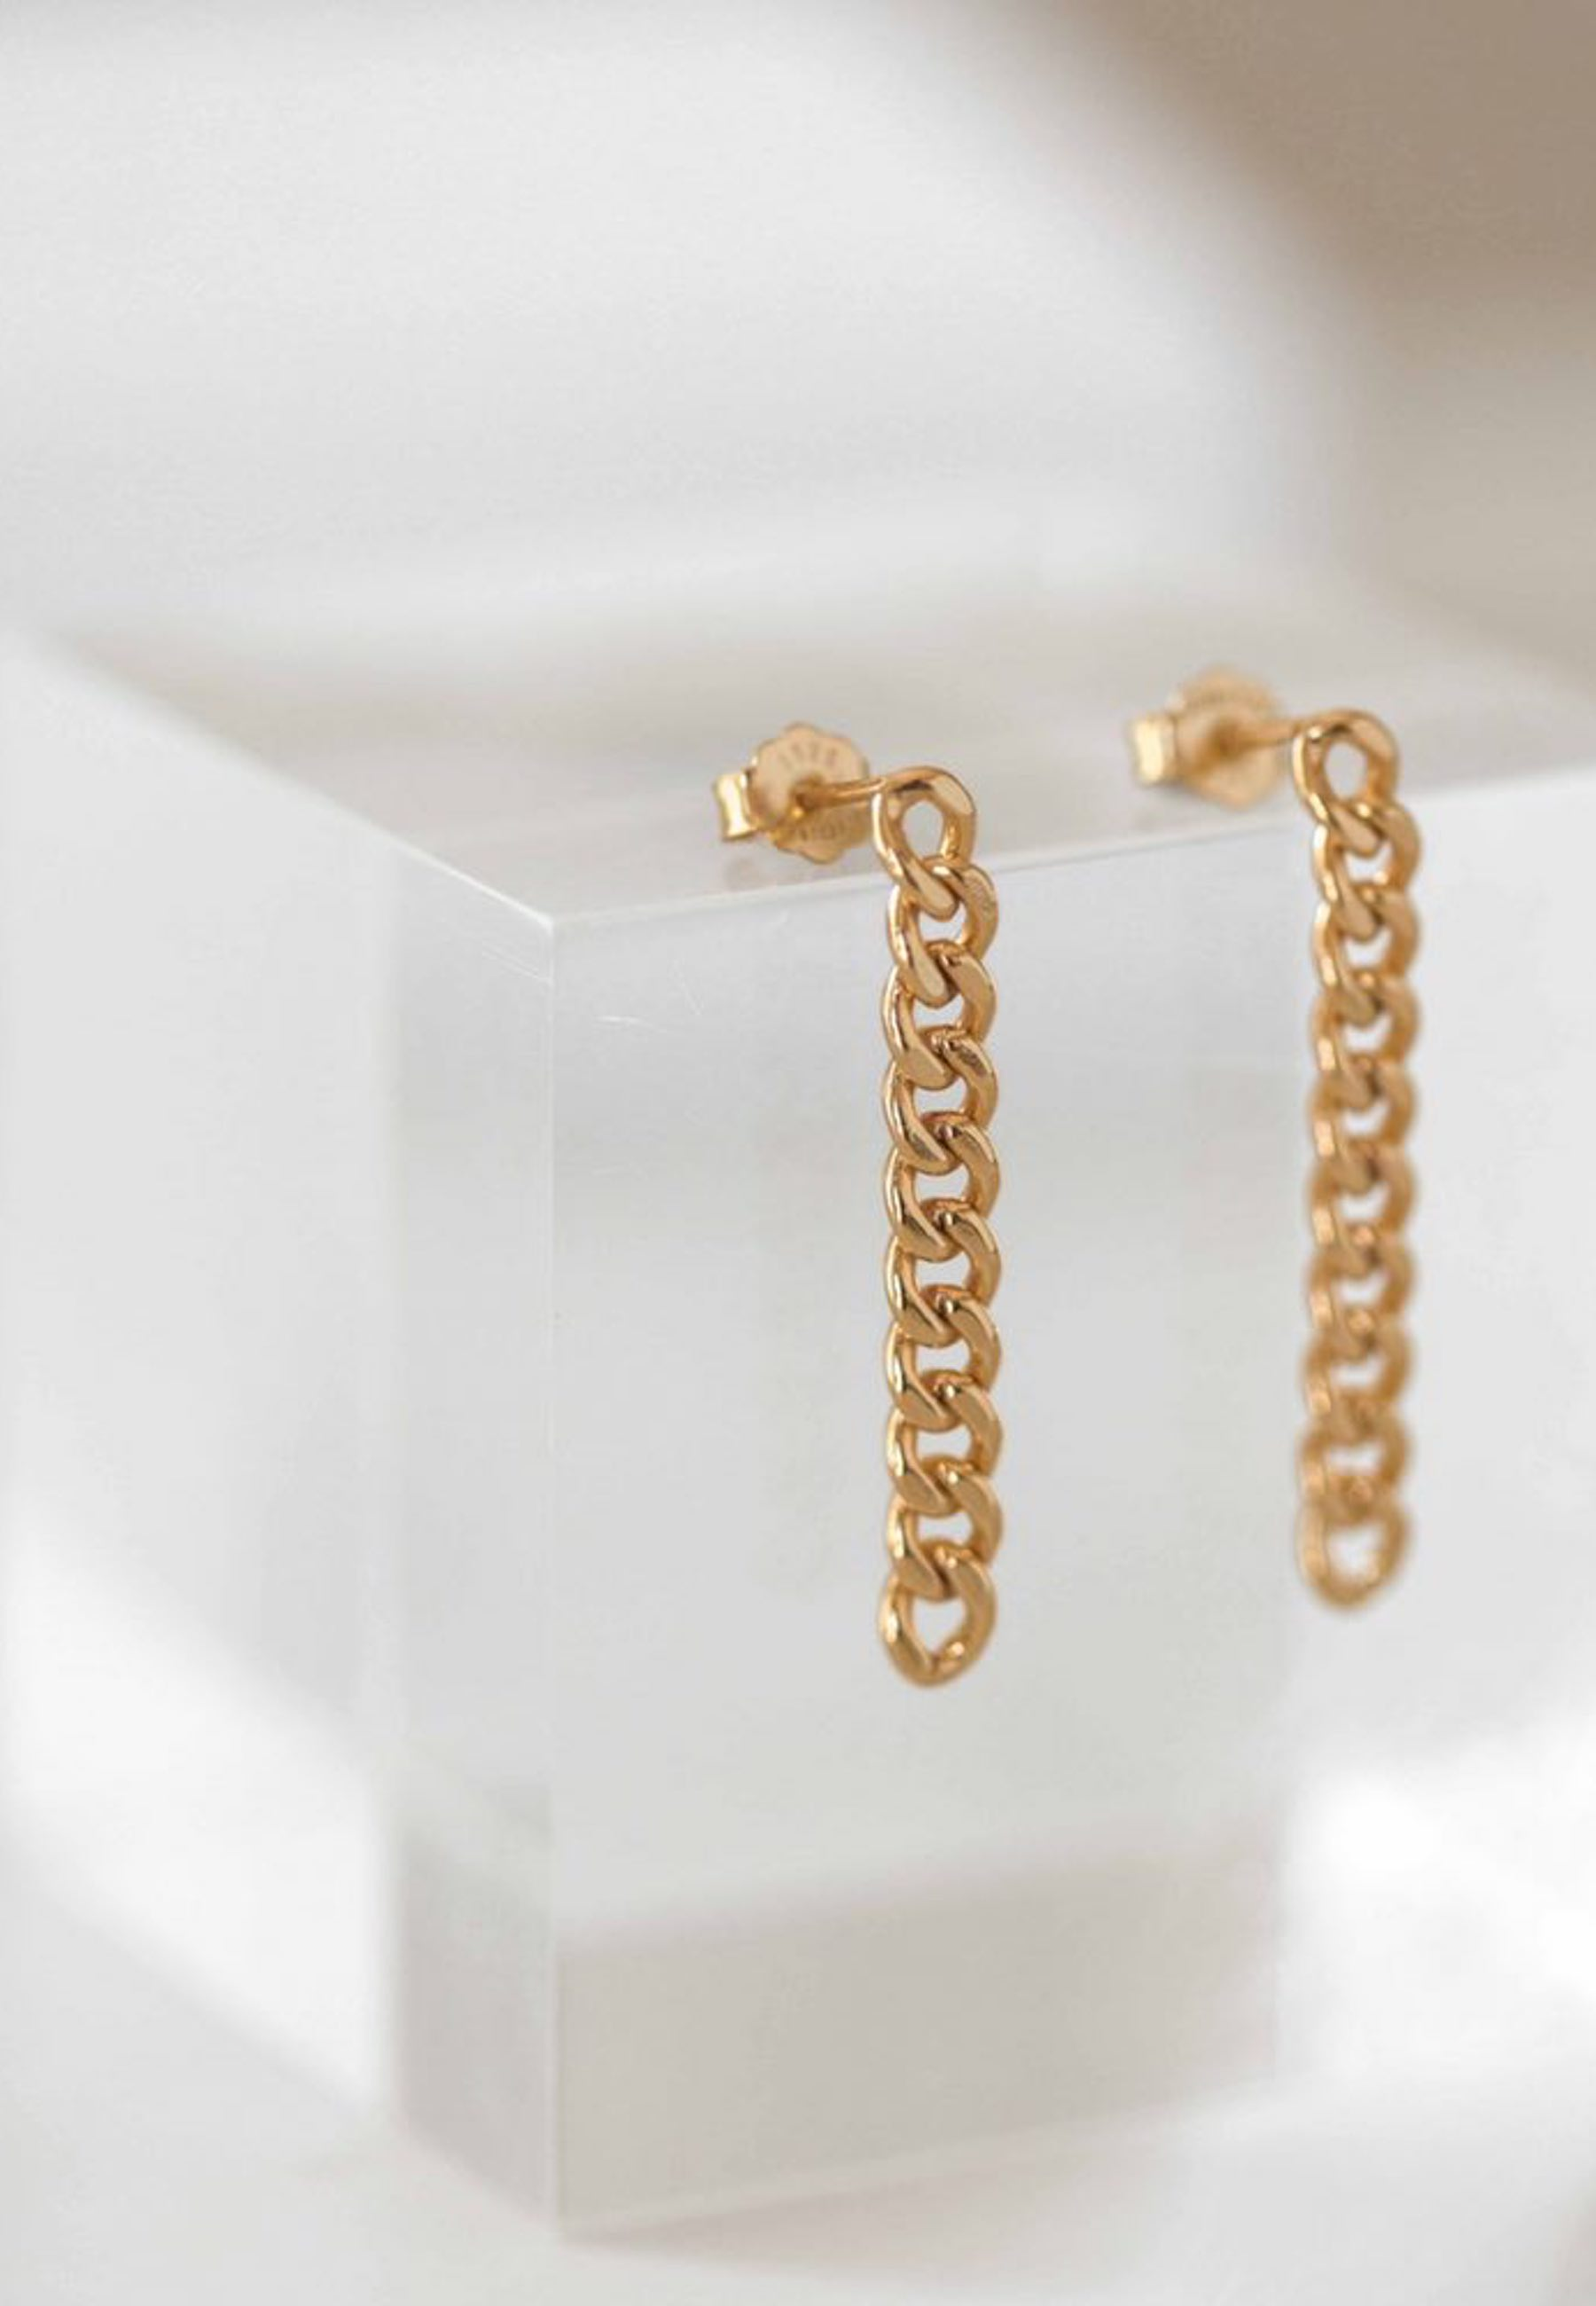 ESLABON gold earrings